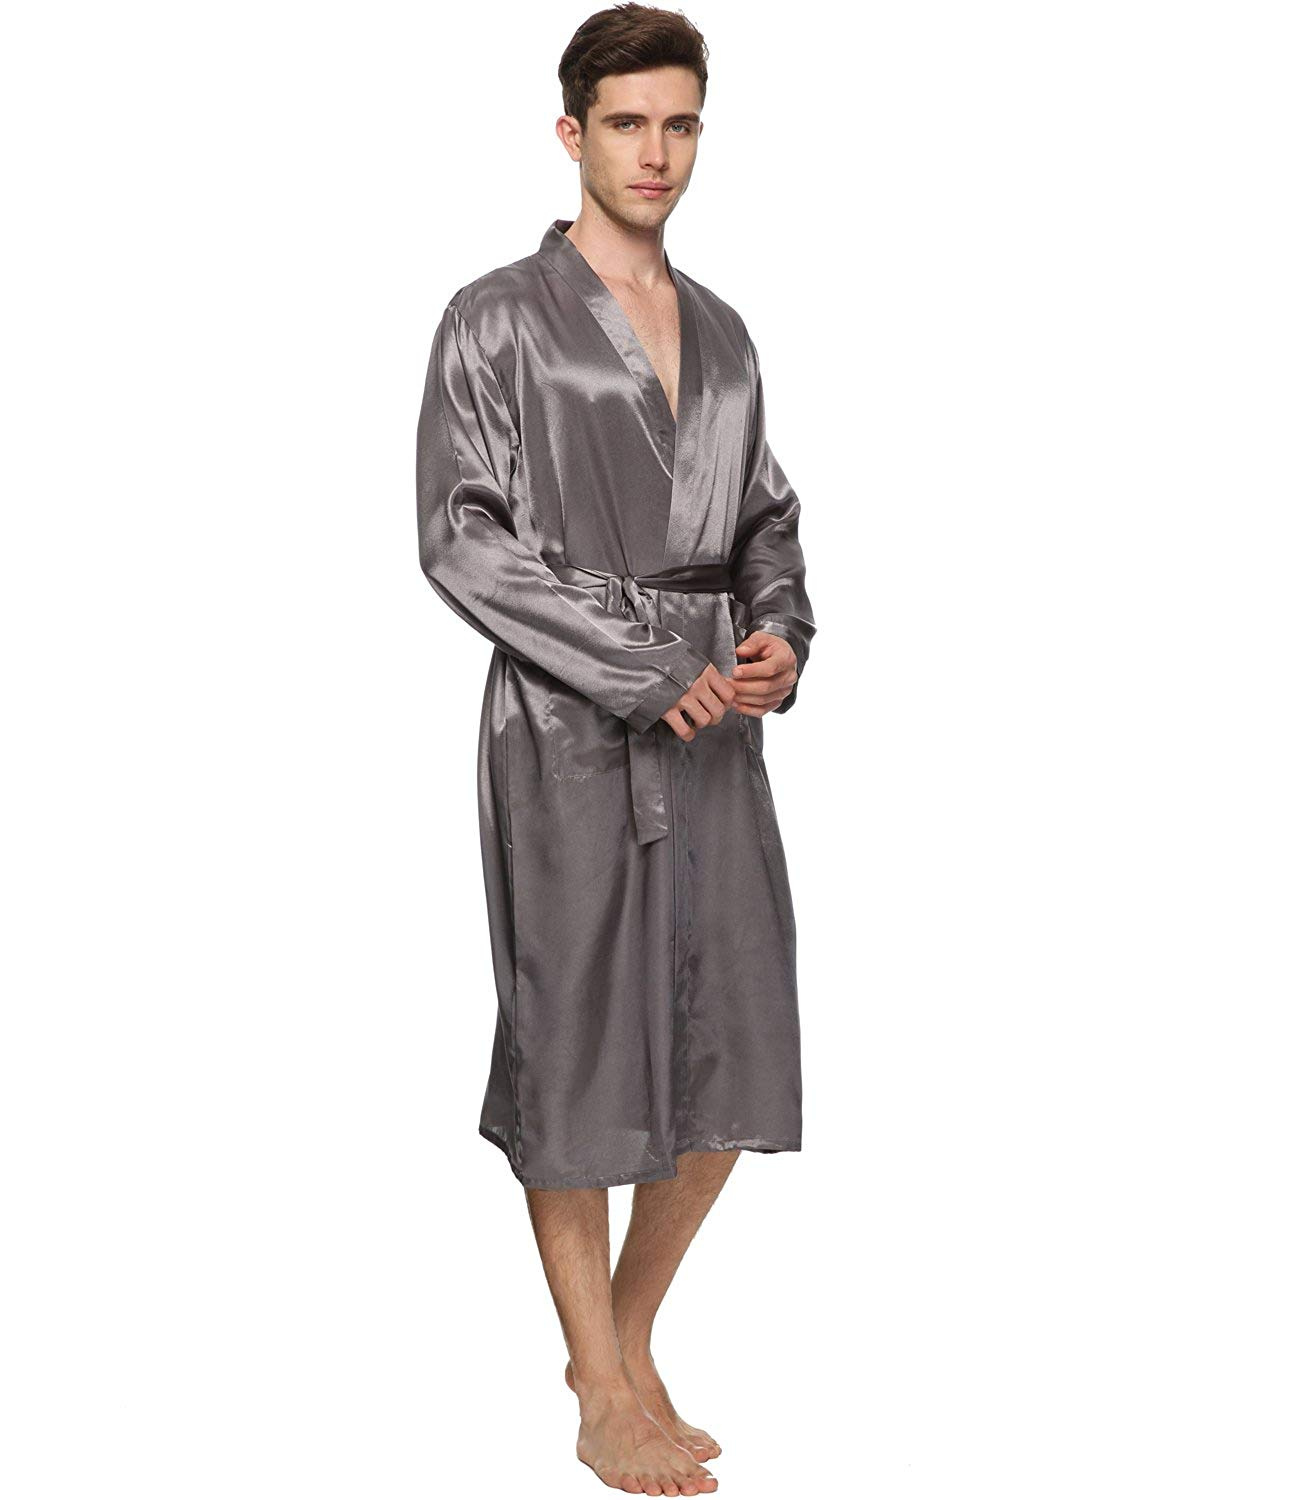 eccae8ba10338 Mens Robes Satin Homeware: Buy Online from Fishpond.co.nz